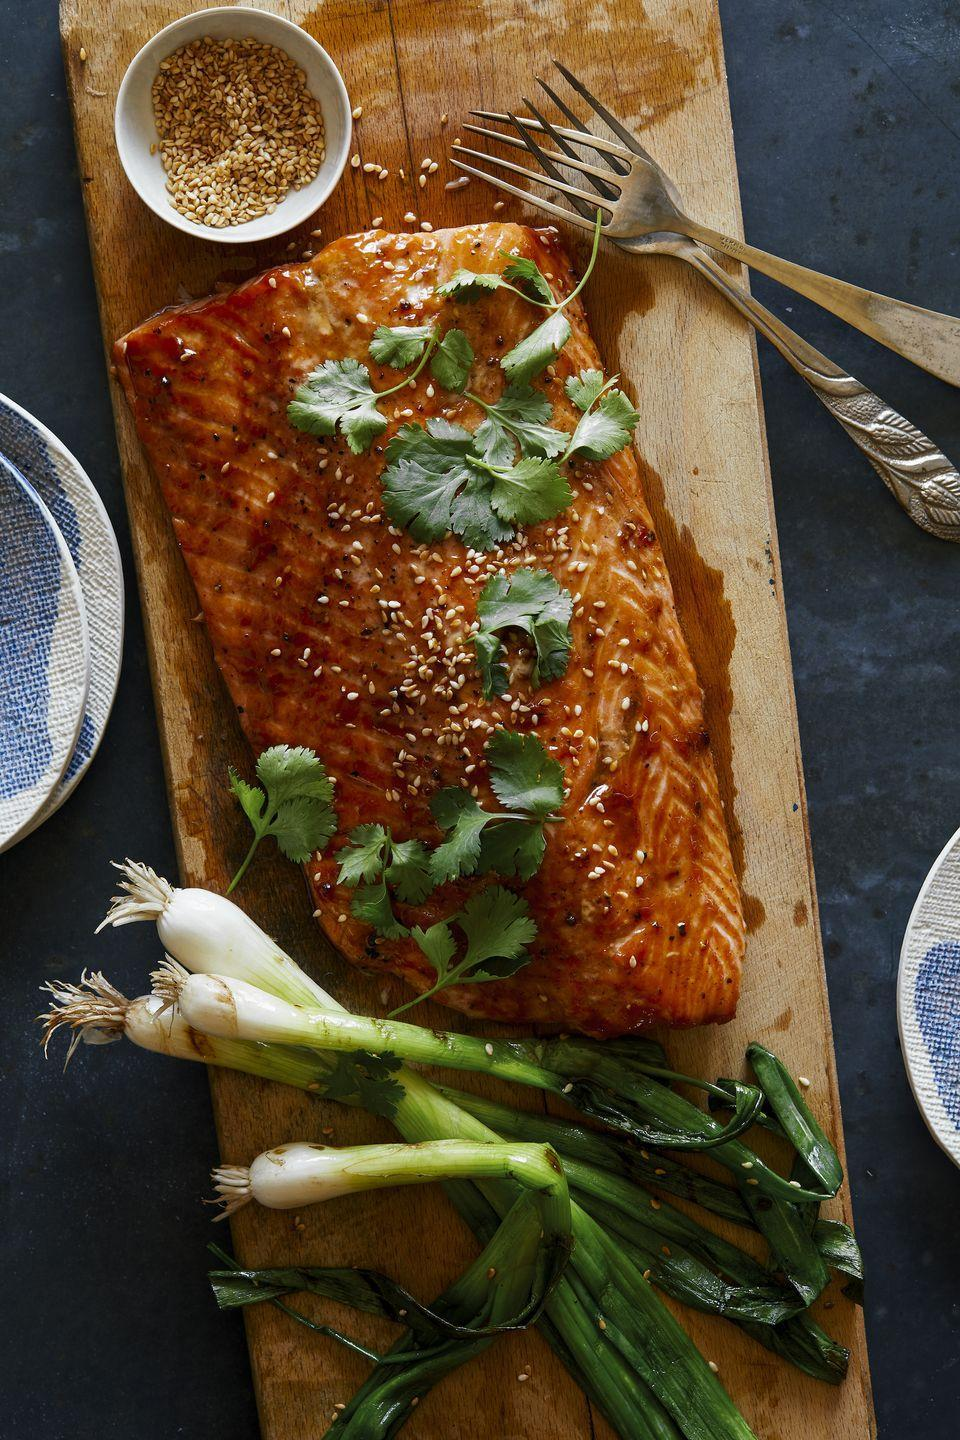 """<p>Take your salmon obsession to the flame.</p><p>Get the recipe from <a href=""""https://www.delish.com/cooking/recipe-ideas/recipes/a53973/asian-bbq-salmon-recipe/"""" rel=""""nofollow noopener"""" target=""""_blank"""" data-ylk=""""slk:Delish"""" class=""""link rapid-noclick-resp"""">Delish</a>.</p>"""